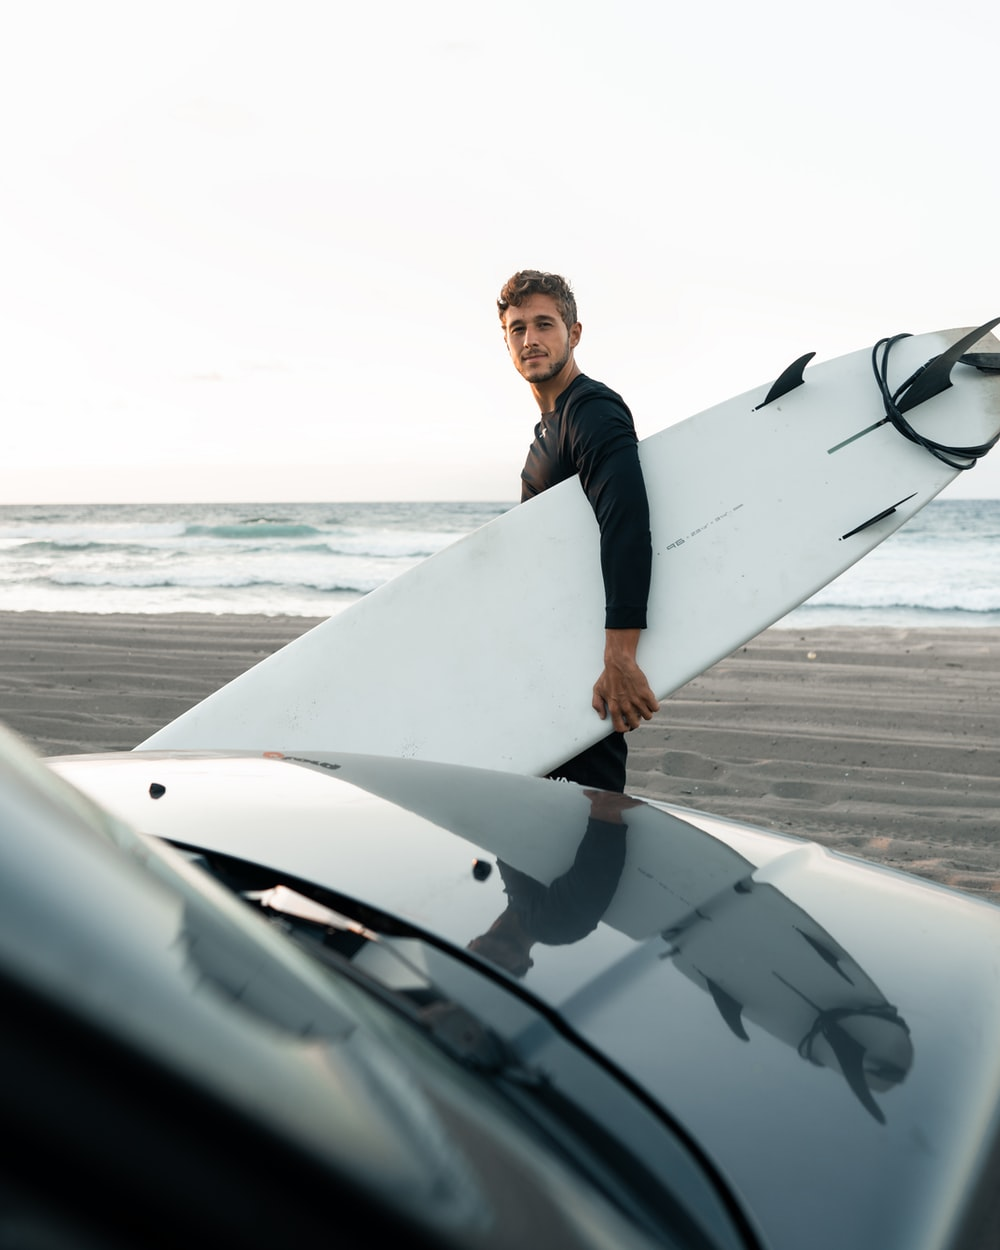 man in black suit holding white surfboard